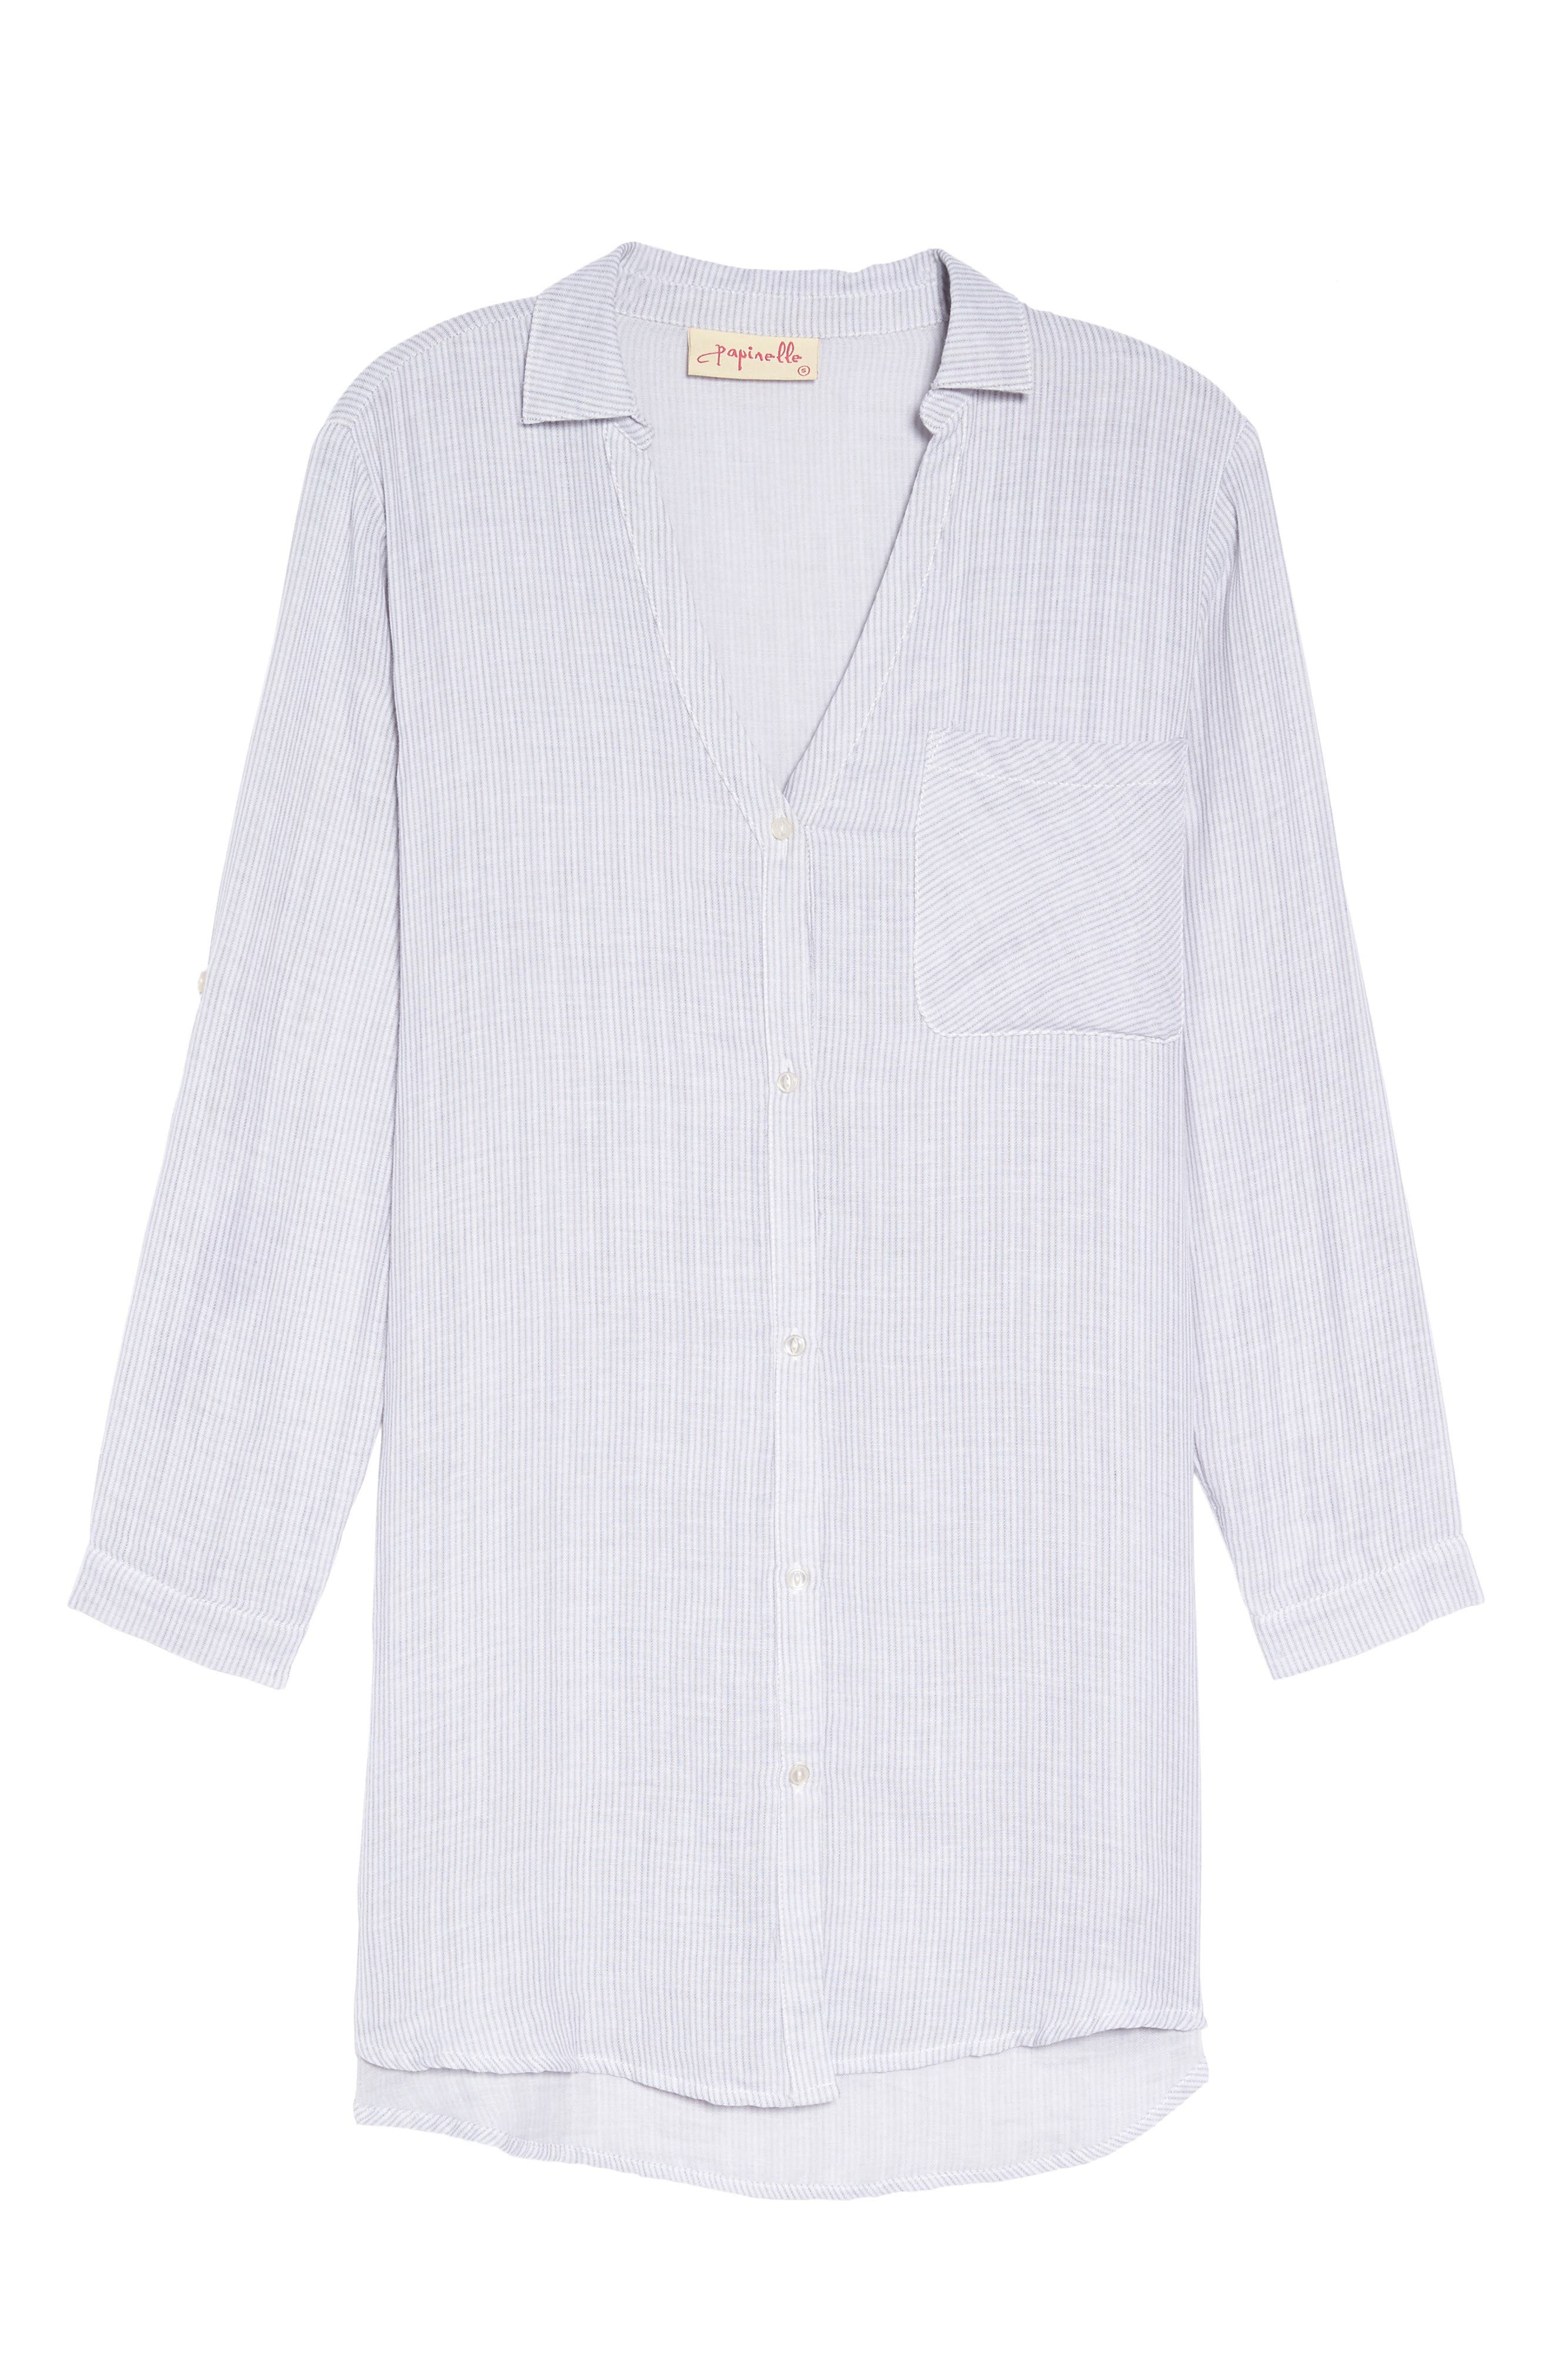 Stripe Sleep Shirt,                             Alternate thumbnail 6, color,                             022